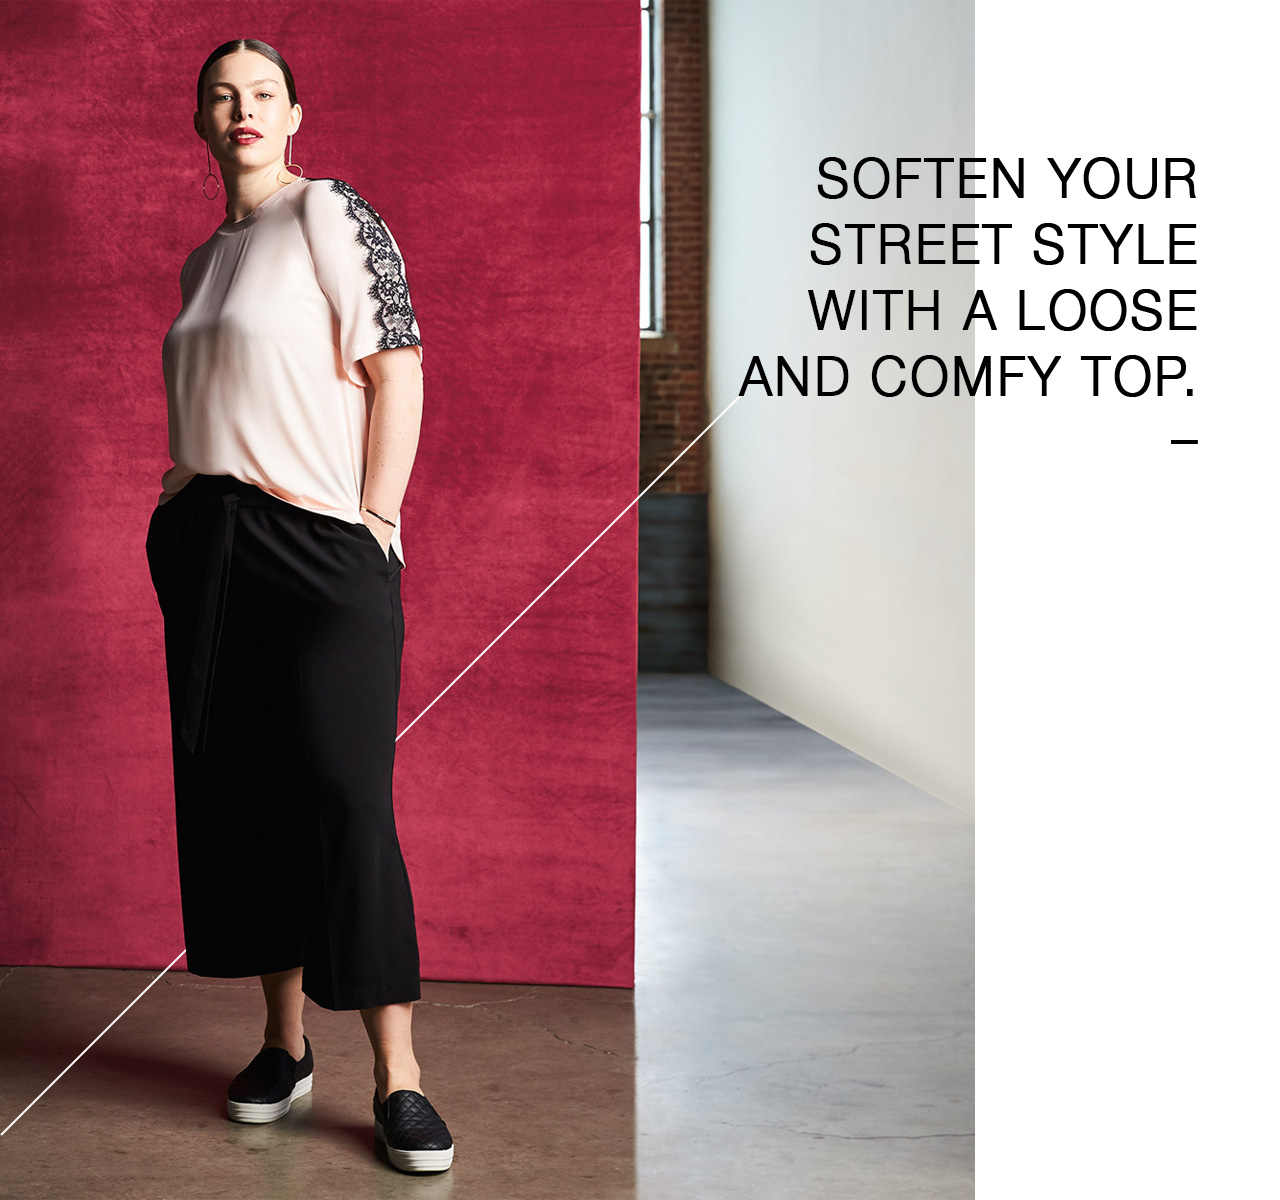 Soften your street style with a loose and comfy top.